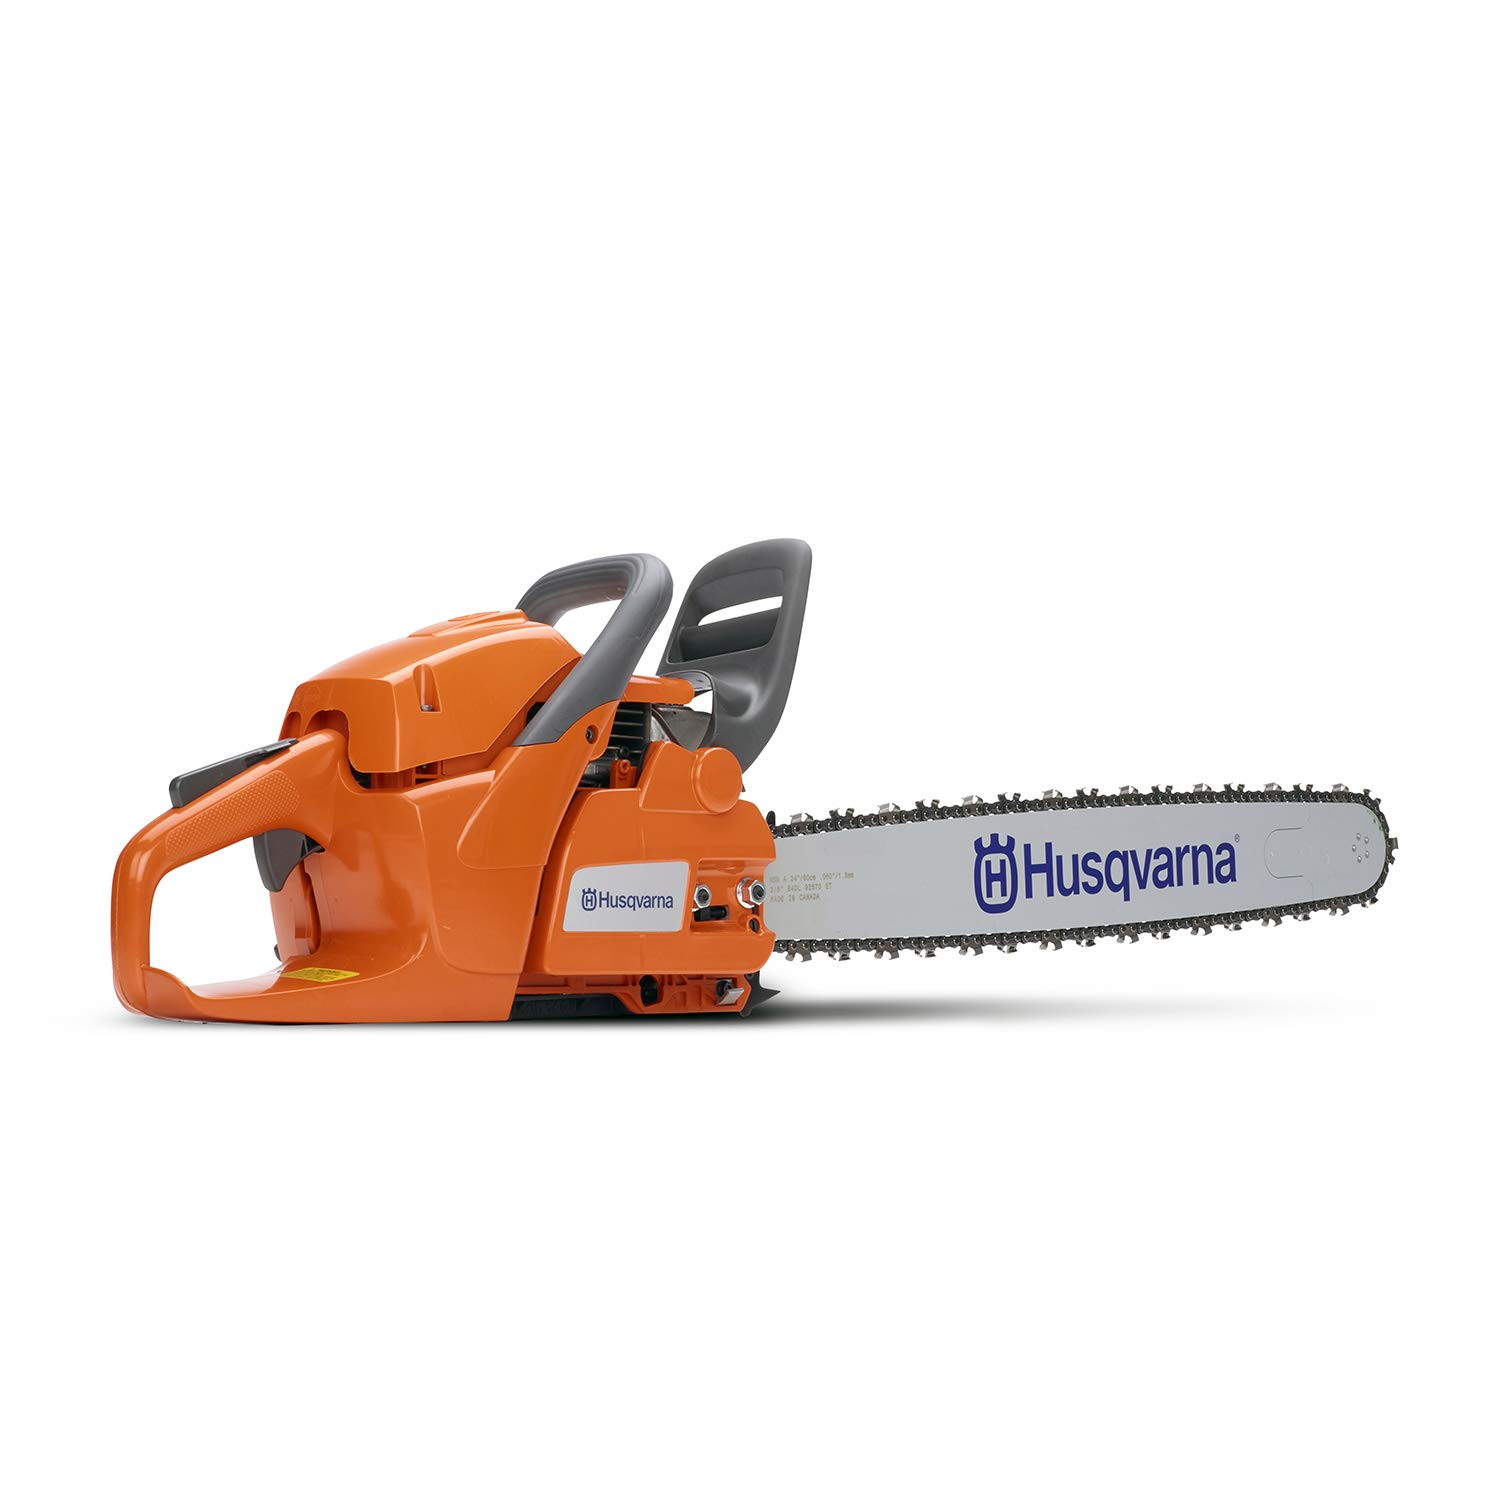 Husqvarna 460 Rancher Chainsaws product image 7